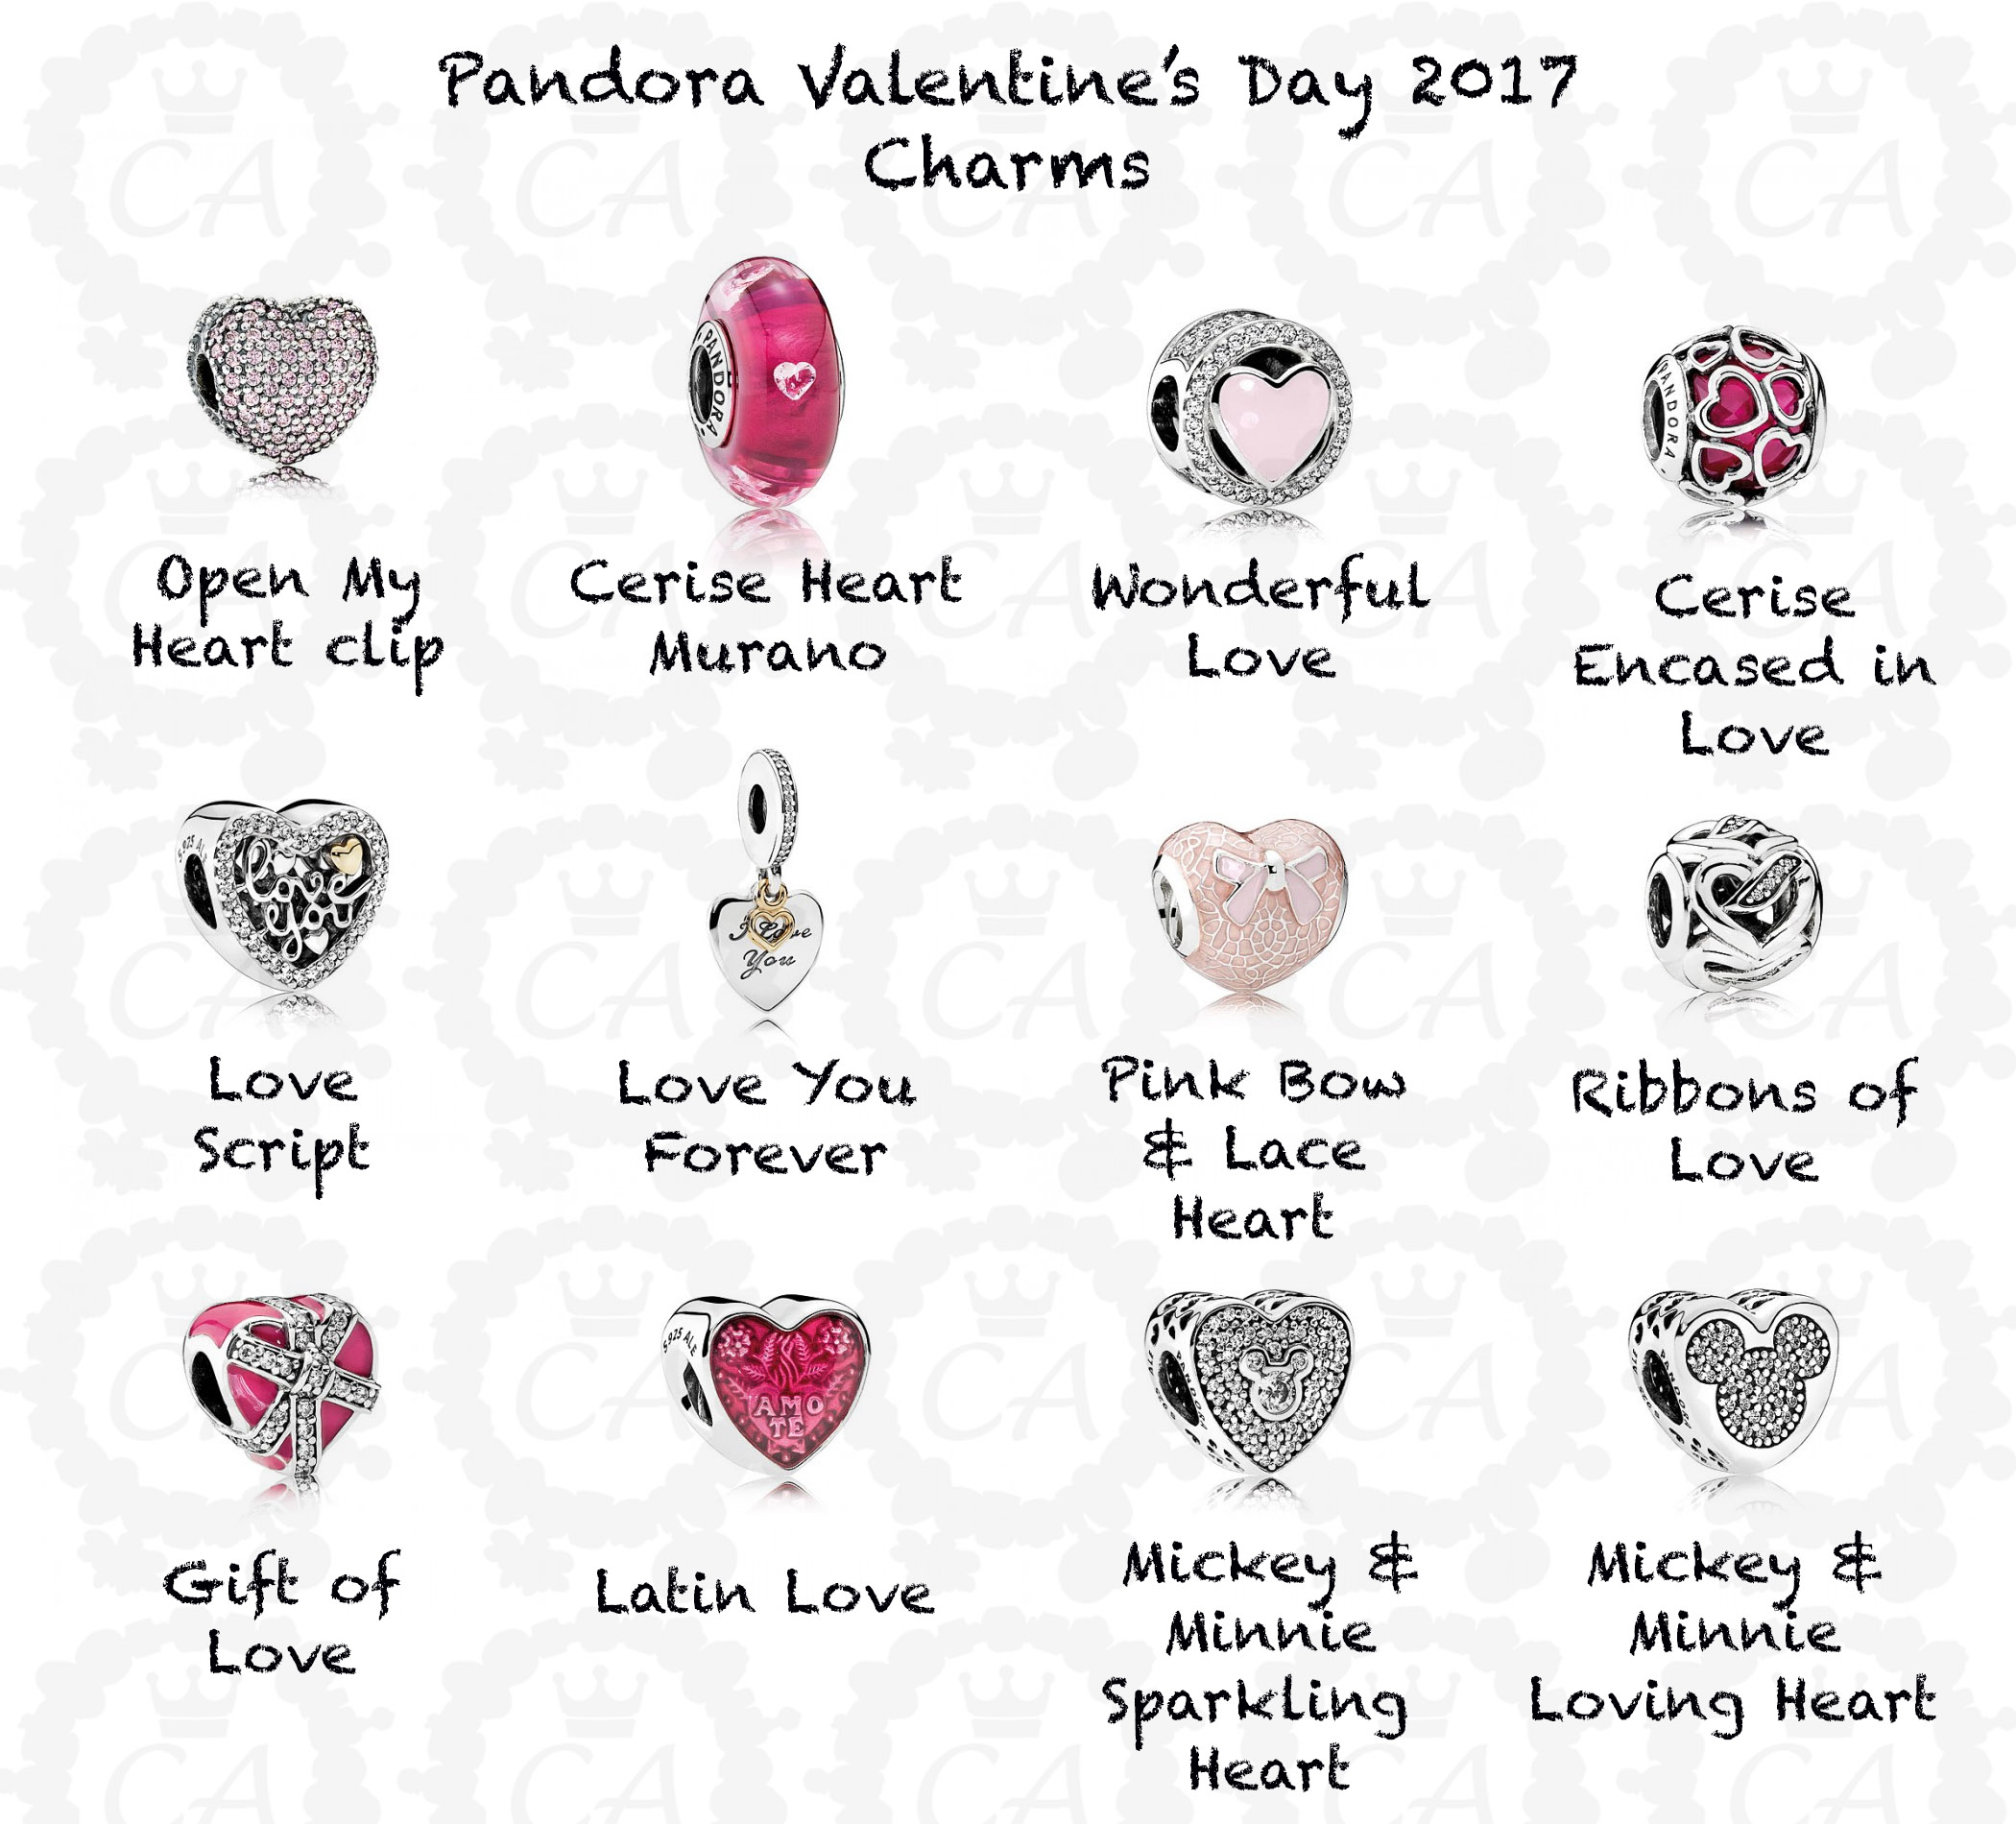 Toll Pandora Valentines Day 2017 Charms